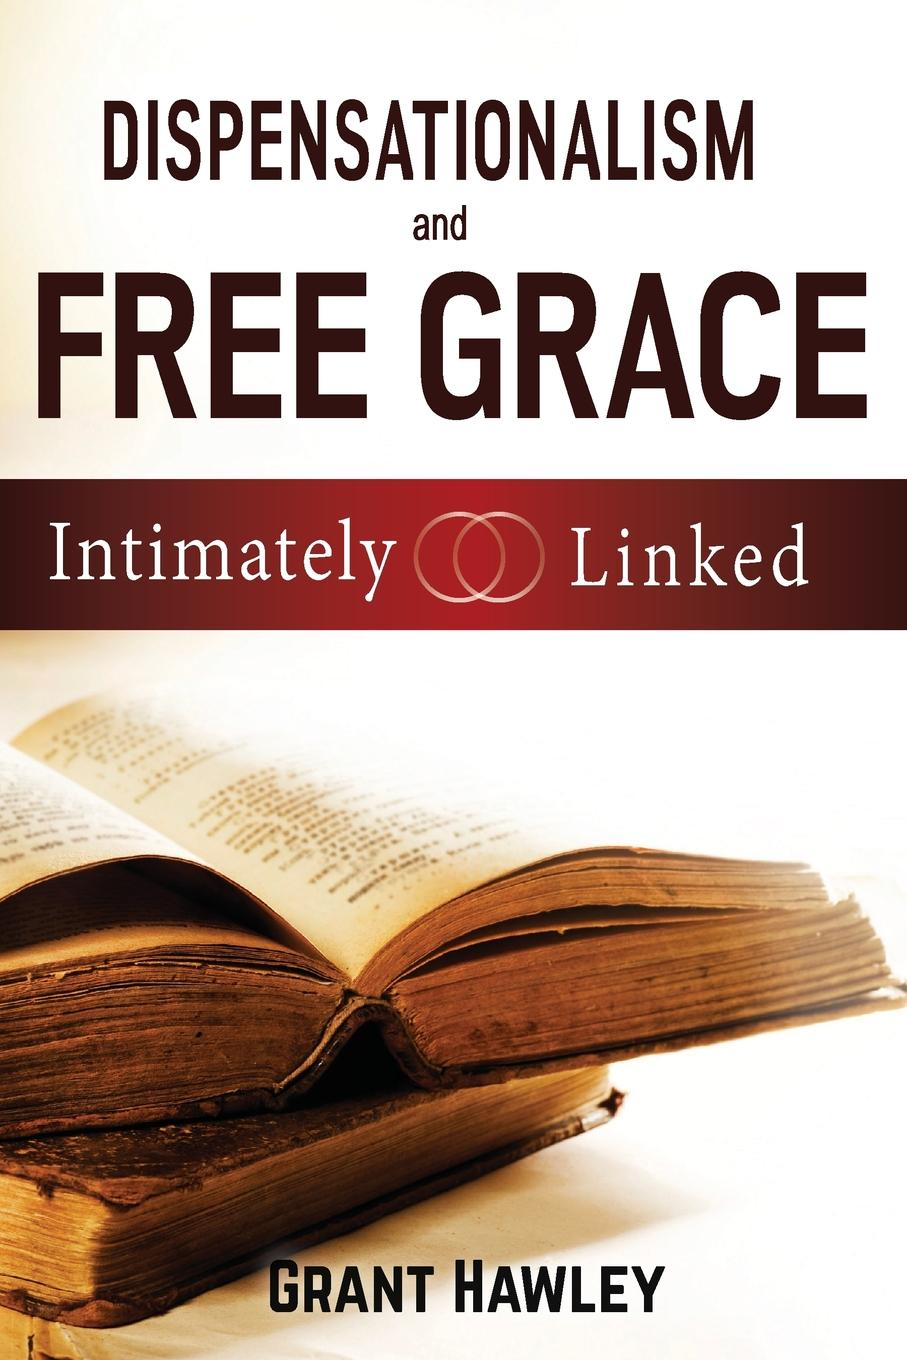 Grant Hawley Dispensationalism and Free Grace. Intimately Linked grace free costly or cheap